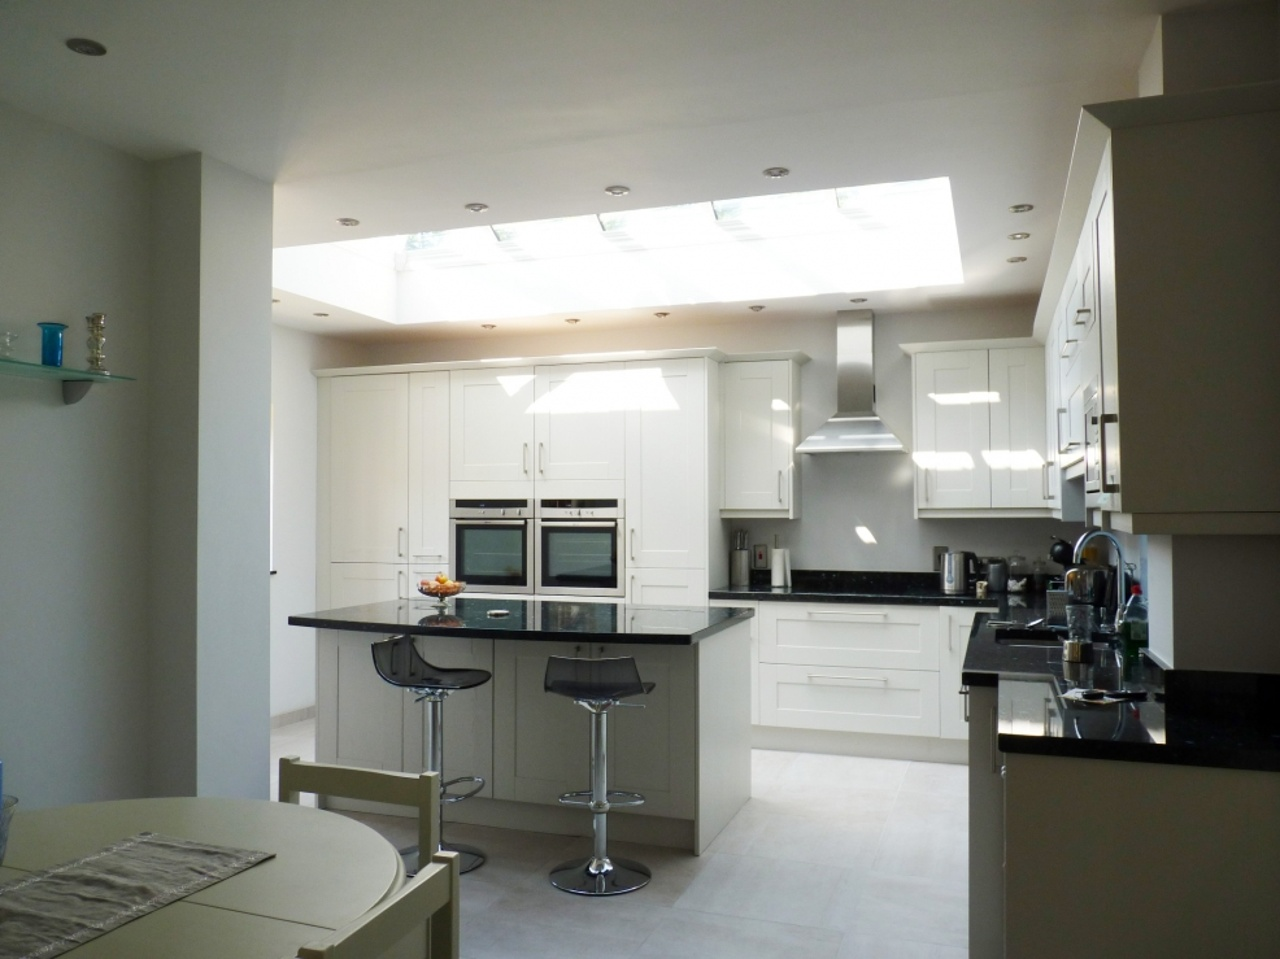 Kitchen Extension with Glass Lantern